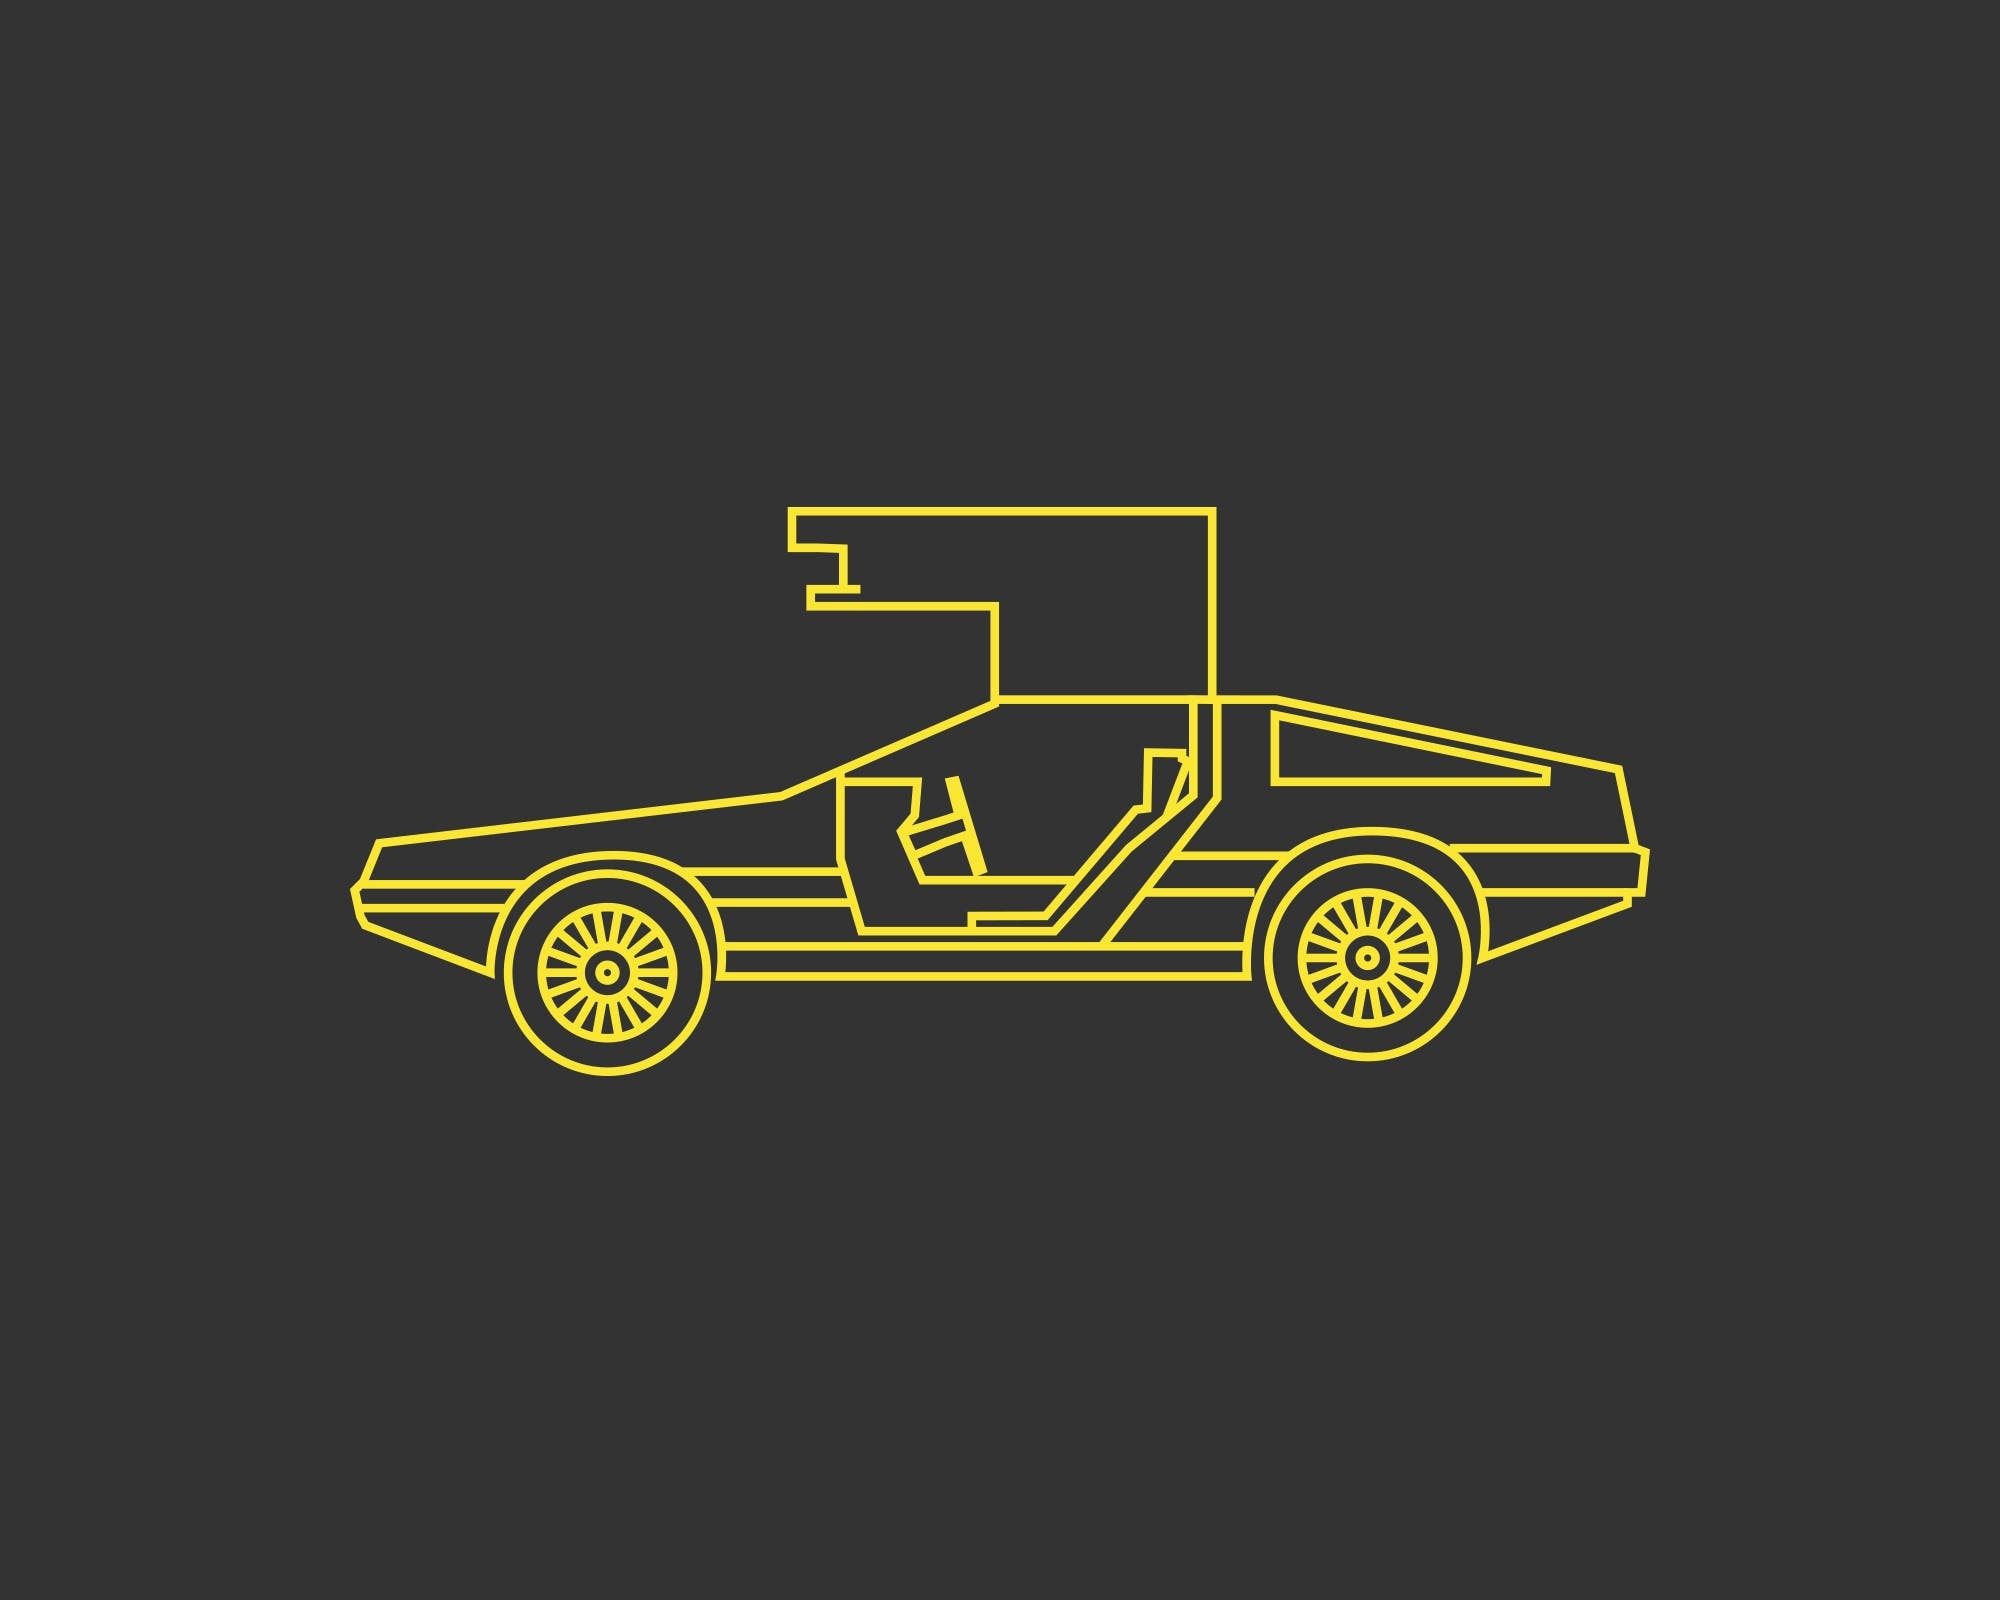 2000x1600 Download Delorean Desktop Wallpaper